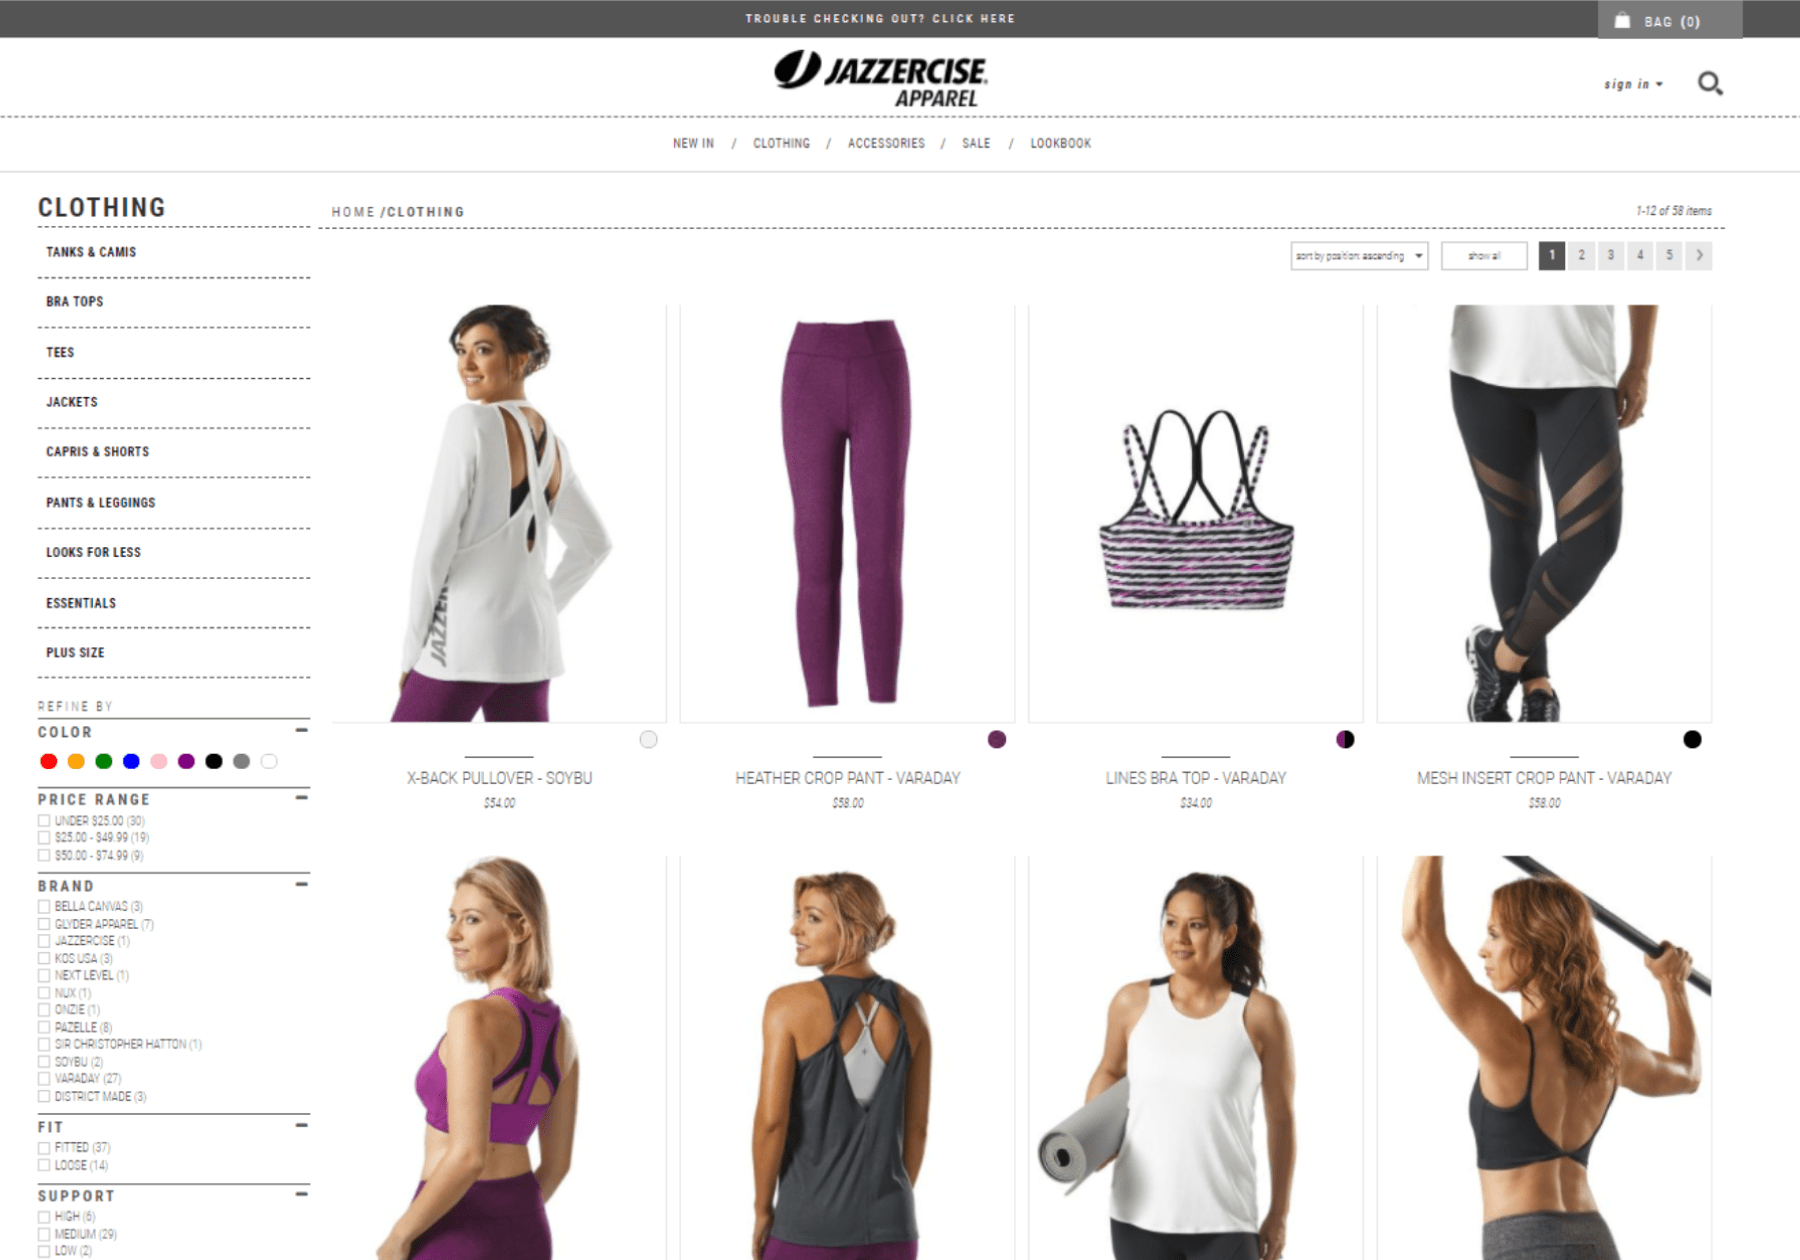 Jazzercise Apparel - Screenshot